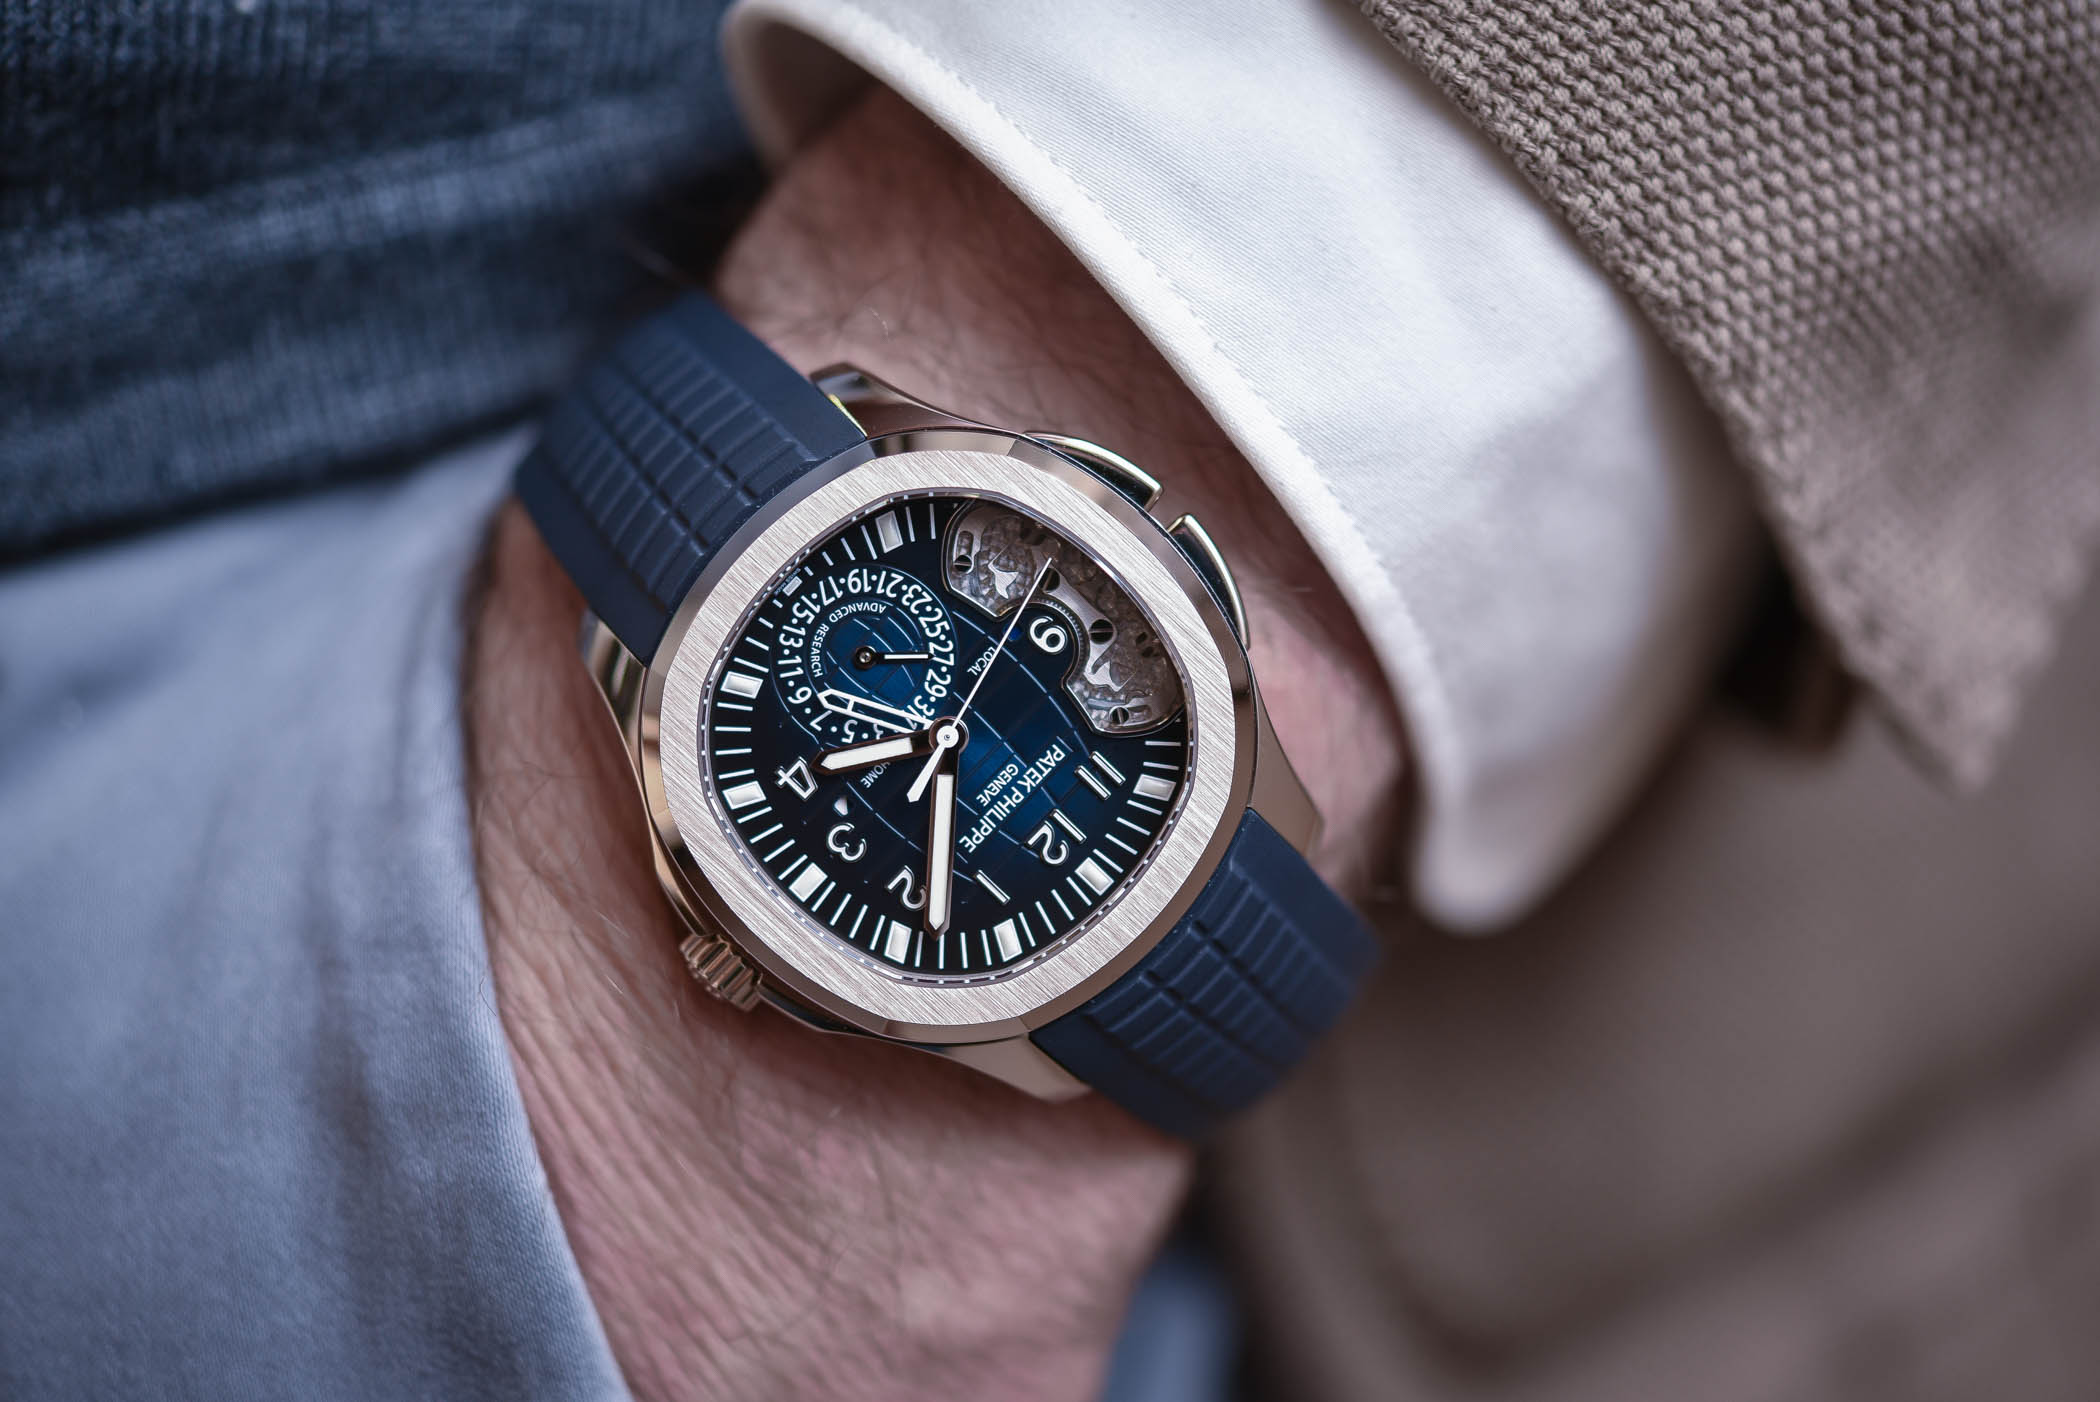 Review – Patek Philippe Advanced Research Aquanaut Travel Time Ref. 5650G (And History of the Advanced Research Program)